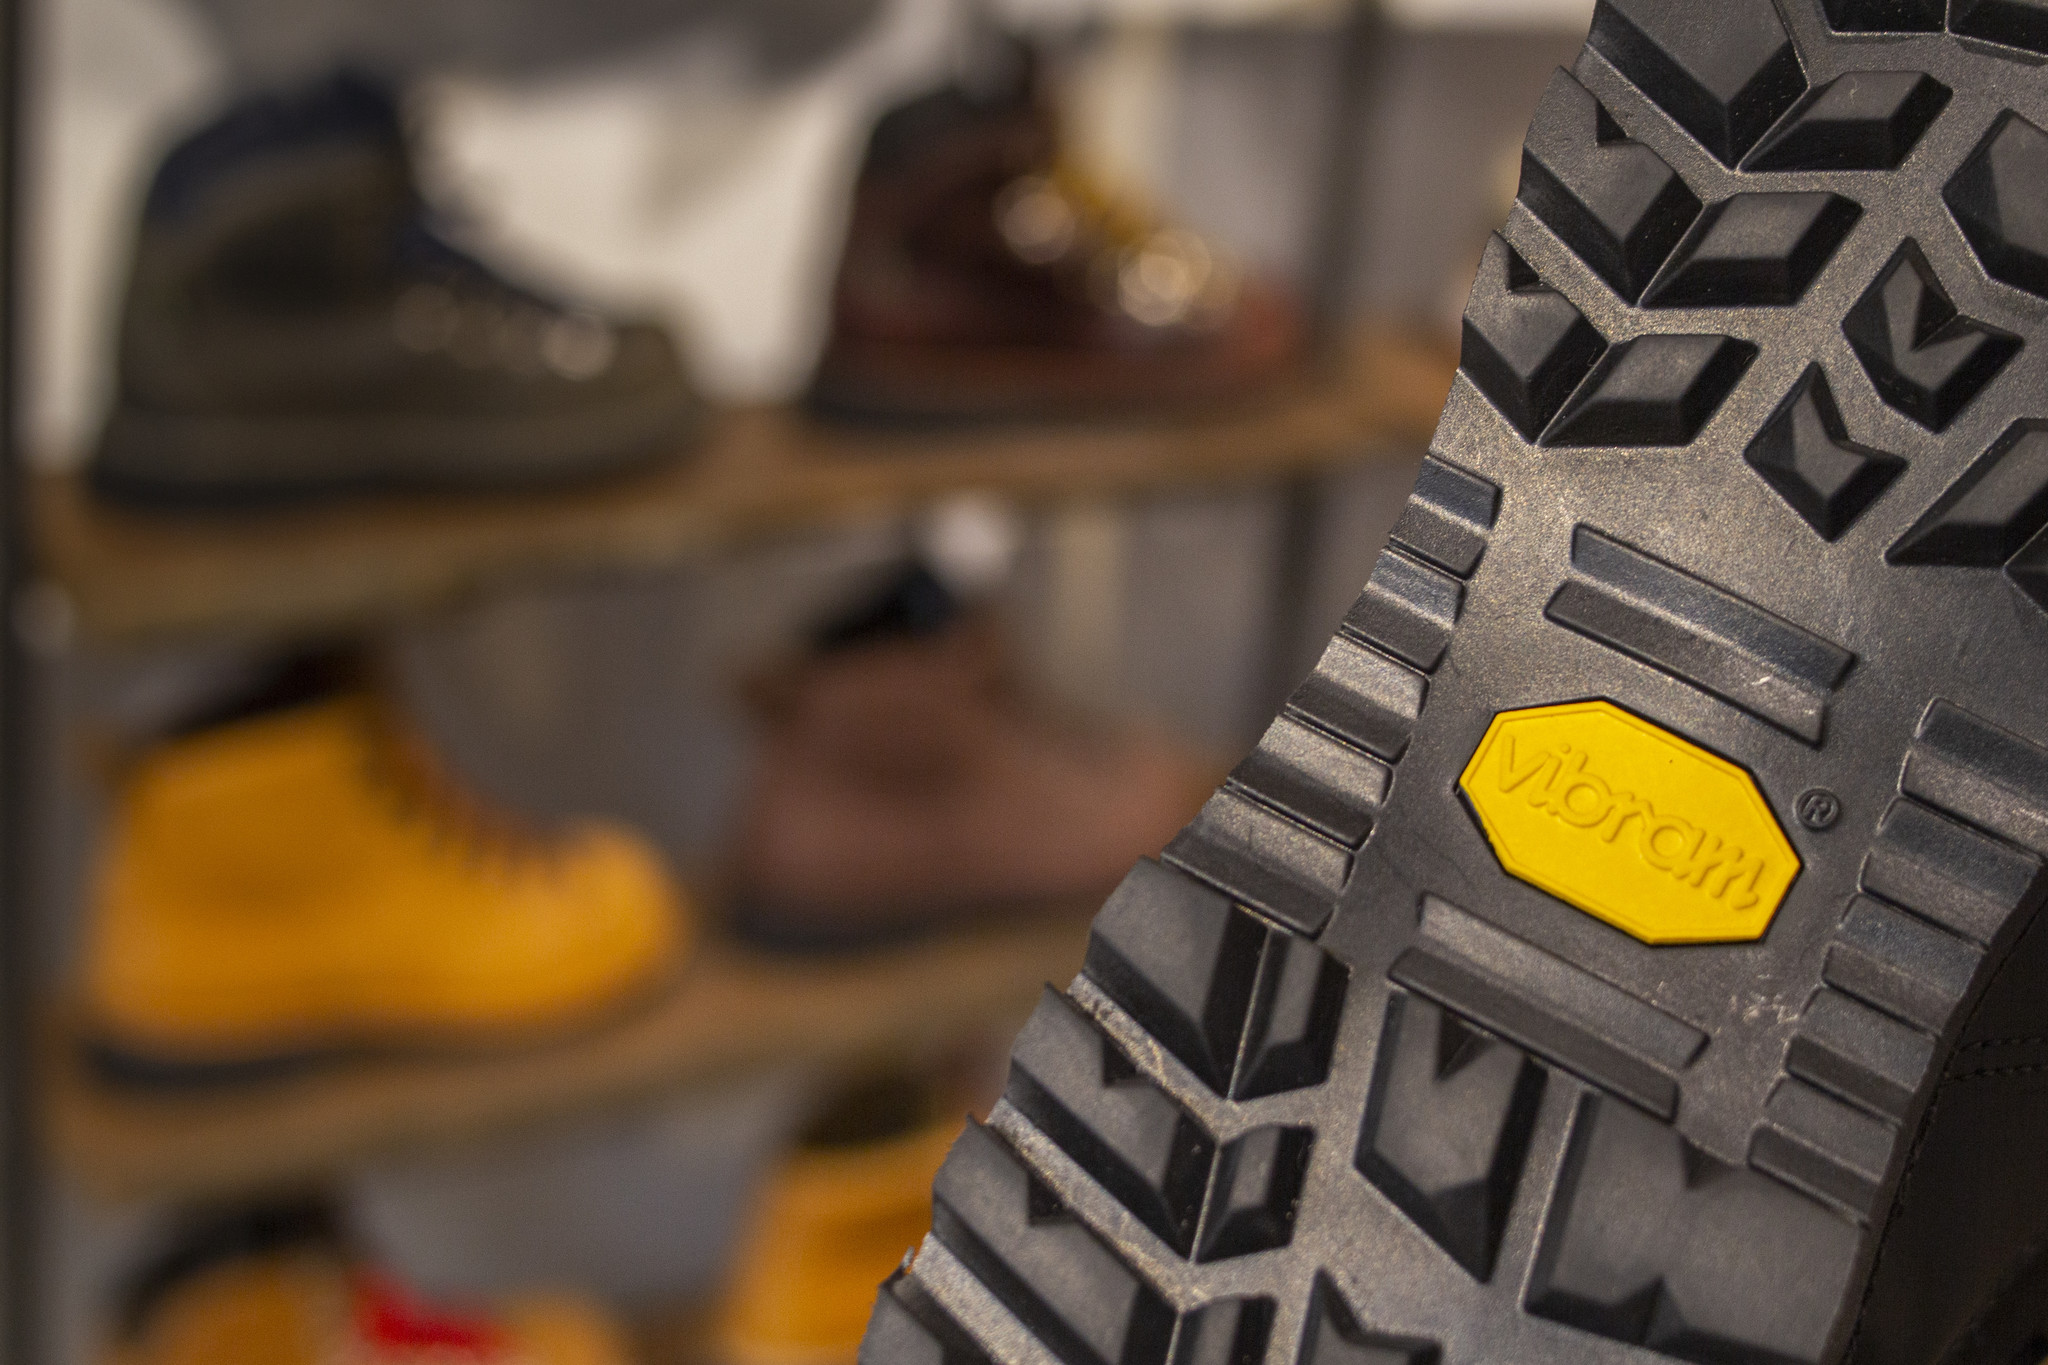 Vibram shoesole: Ideal for upcoming winter!